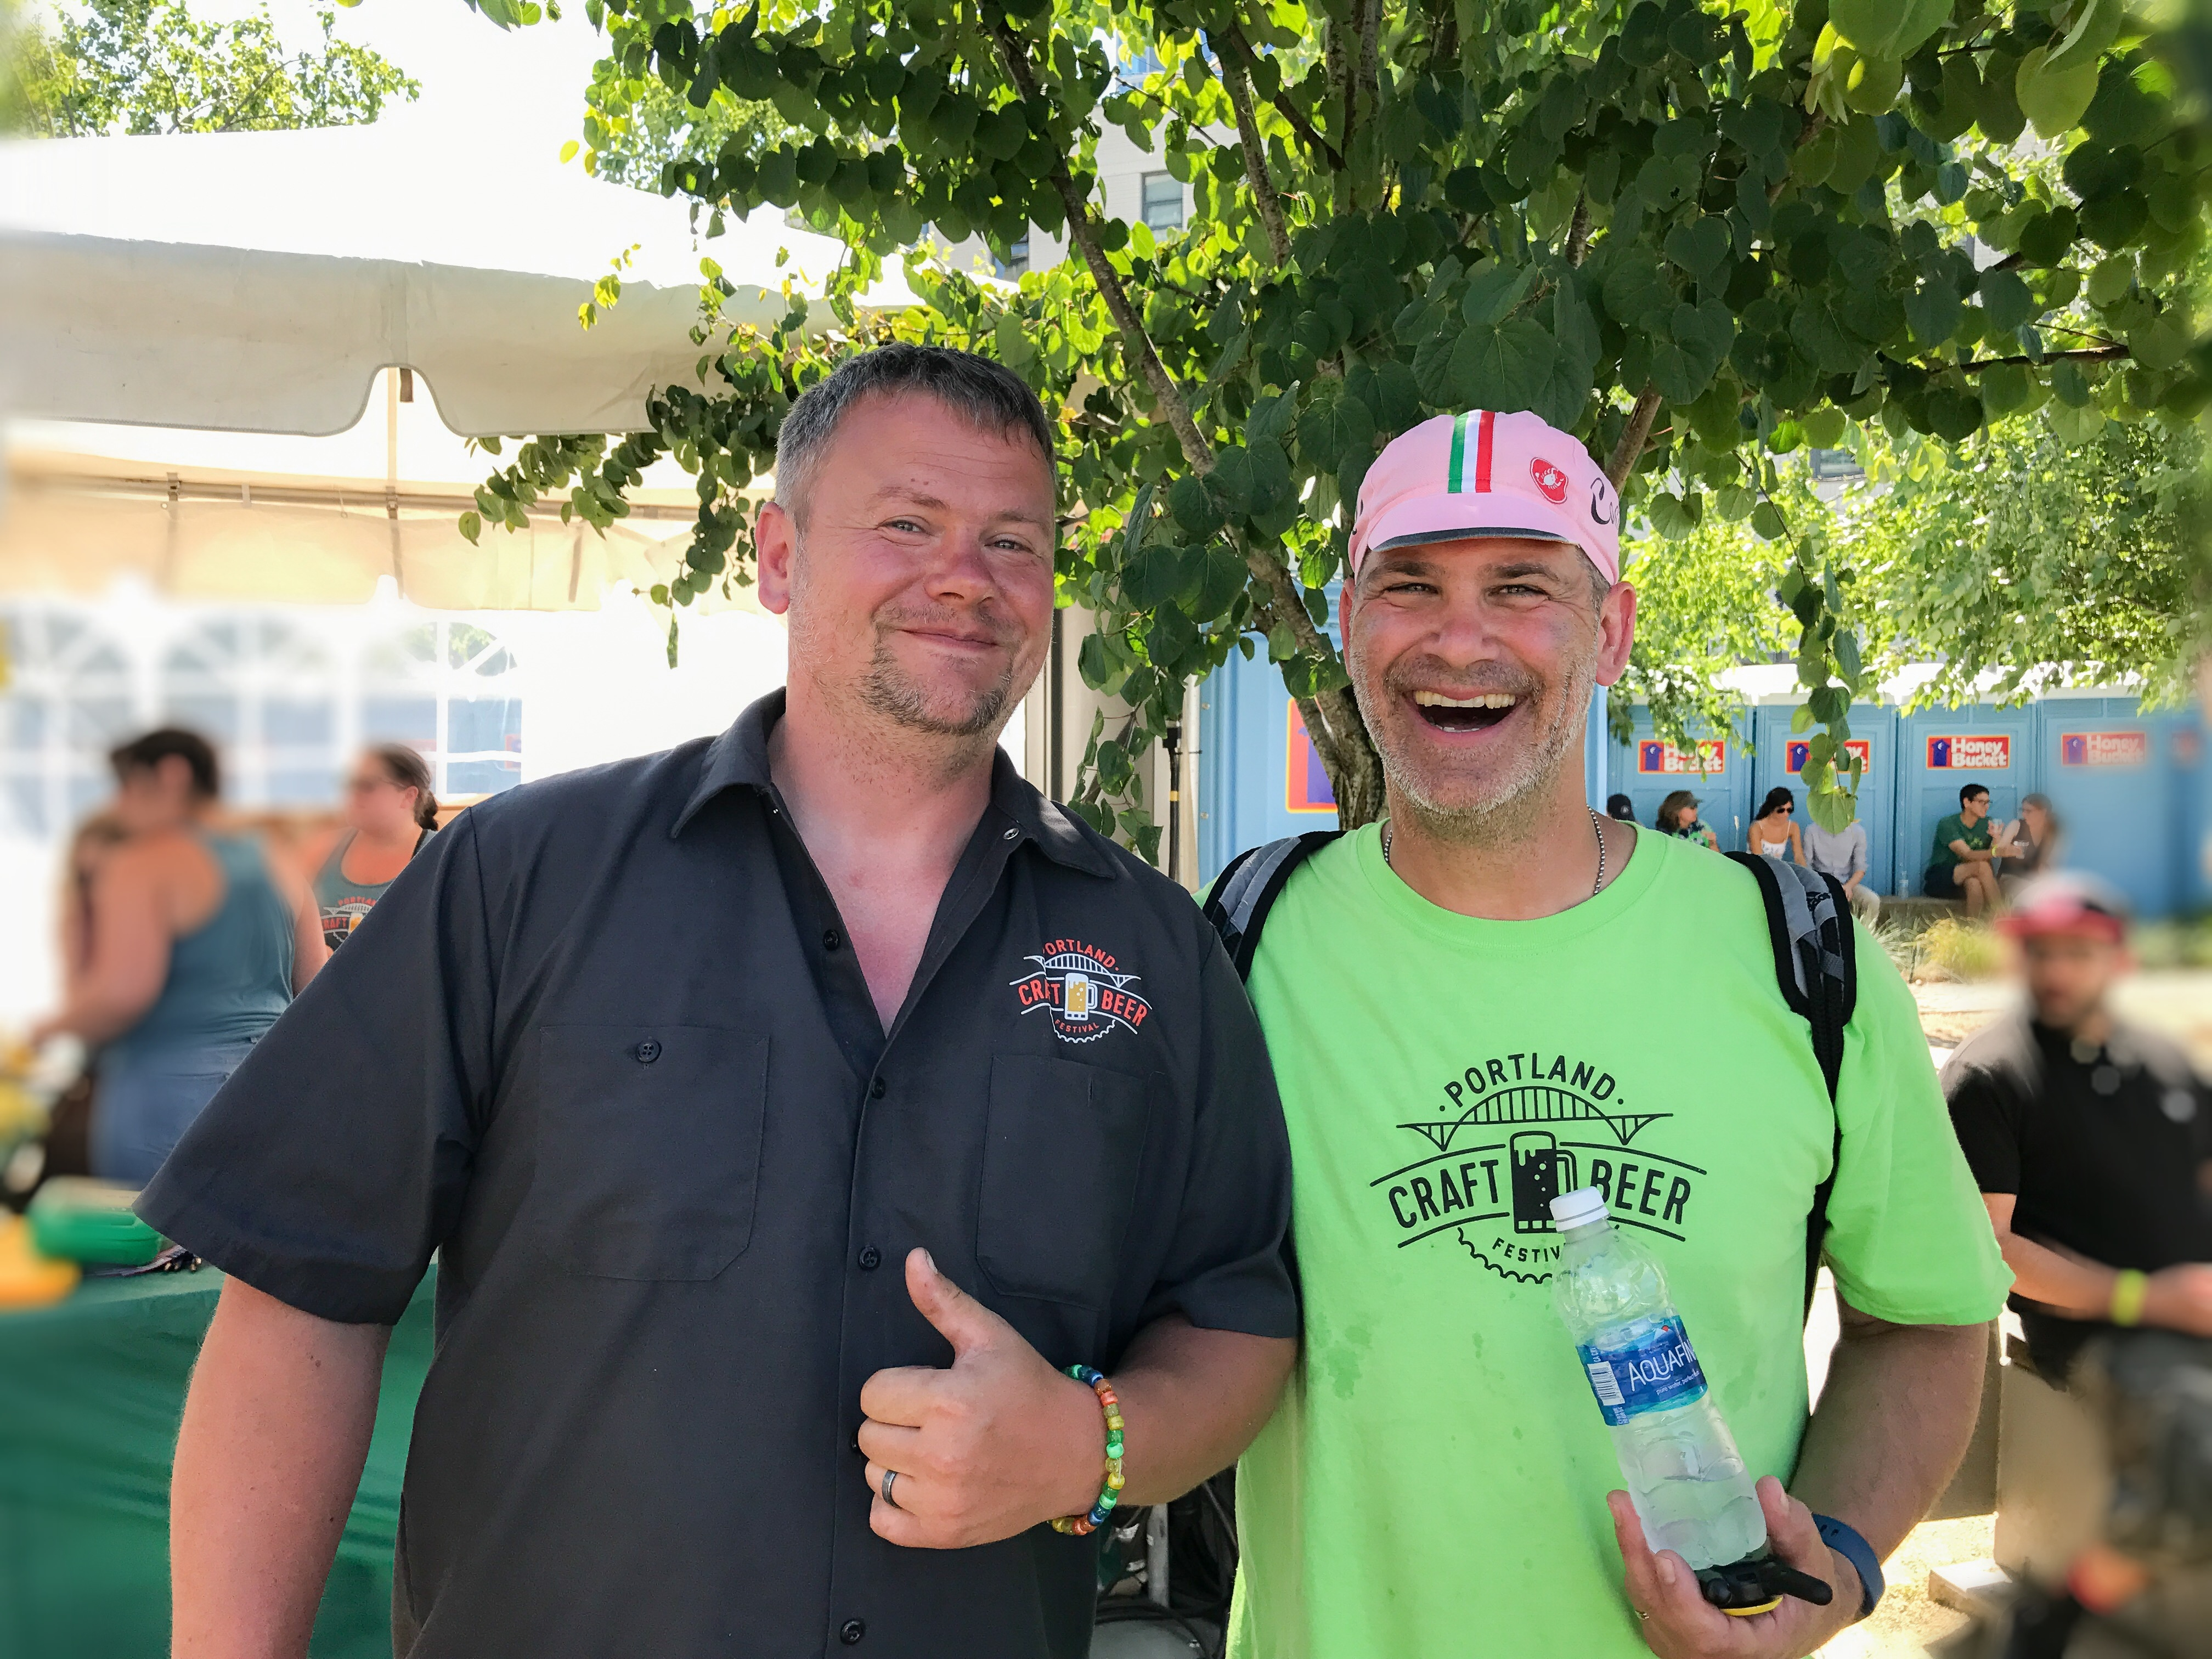 Portland Craft Beer Festival 2018 Preview - Portland Beer Podcast episode 72 by Steven Shomler